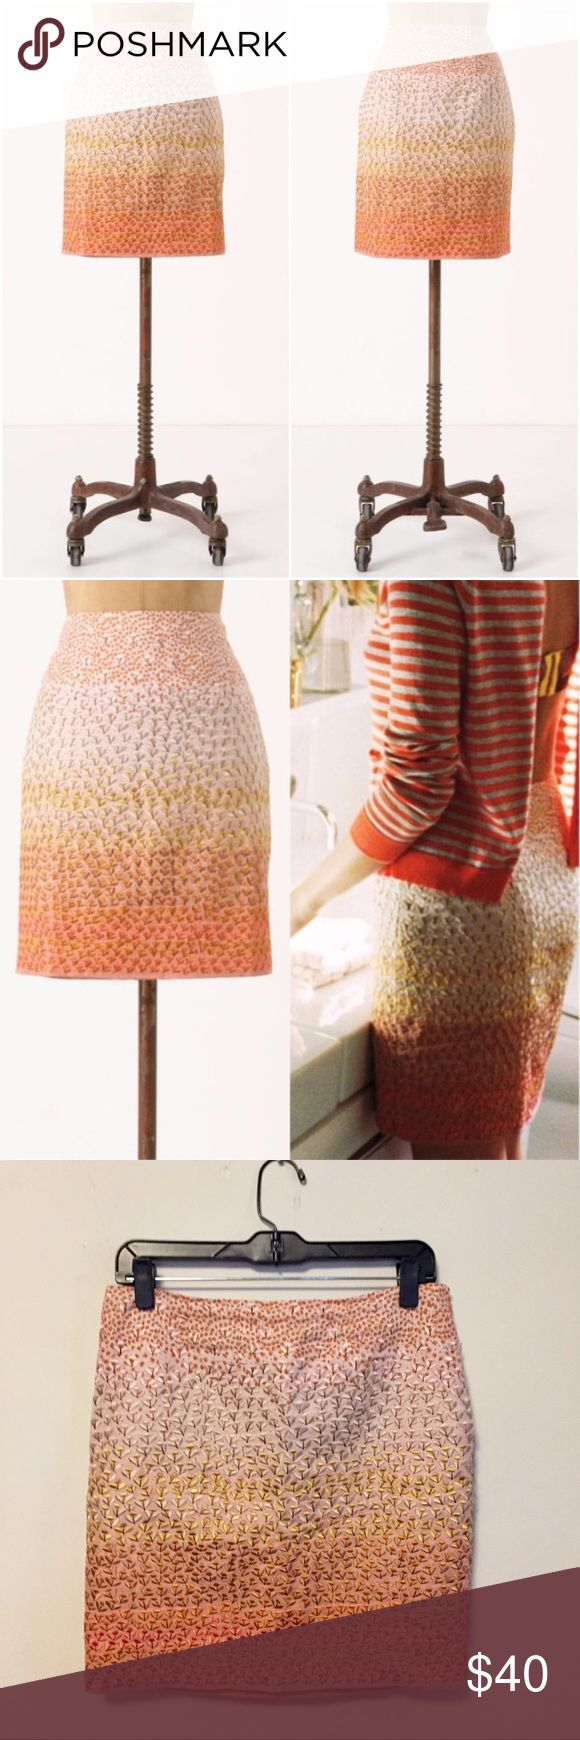 "Anthropologie HD in Paris Ombré Petals Embroidered Anthropologie HD in Paris Ombré Petals Embroidered Skirt Lustrously embroidered cherry blossoms and an ever-deepening hue lend dimension to a slim linen skirt.  Stunning leaf detail against orange ombre. 100% Linen, 100% Polyester Lining Fully lined. Side zip enclosure.  Approximate: 16"" Waist, 17.5"" Length  Gently preowned but good condition. Anthropologie Skirts Pencil"